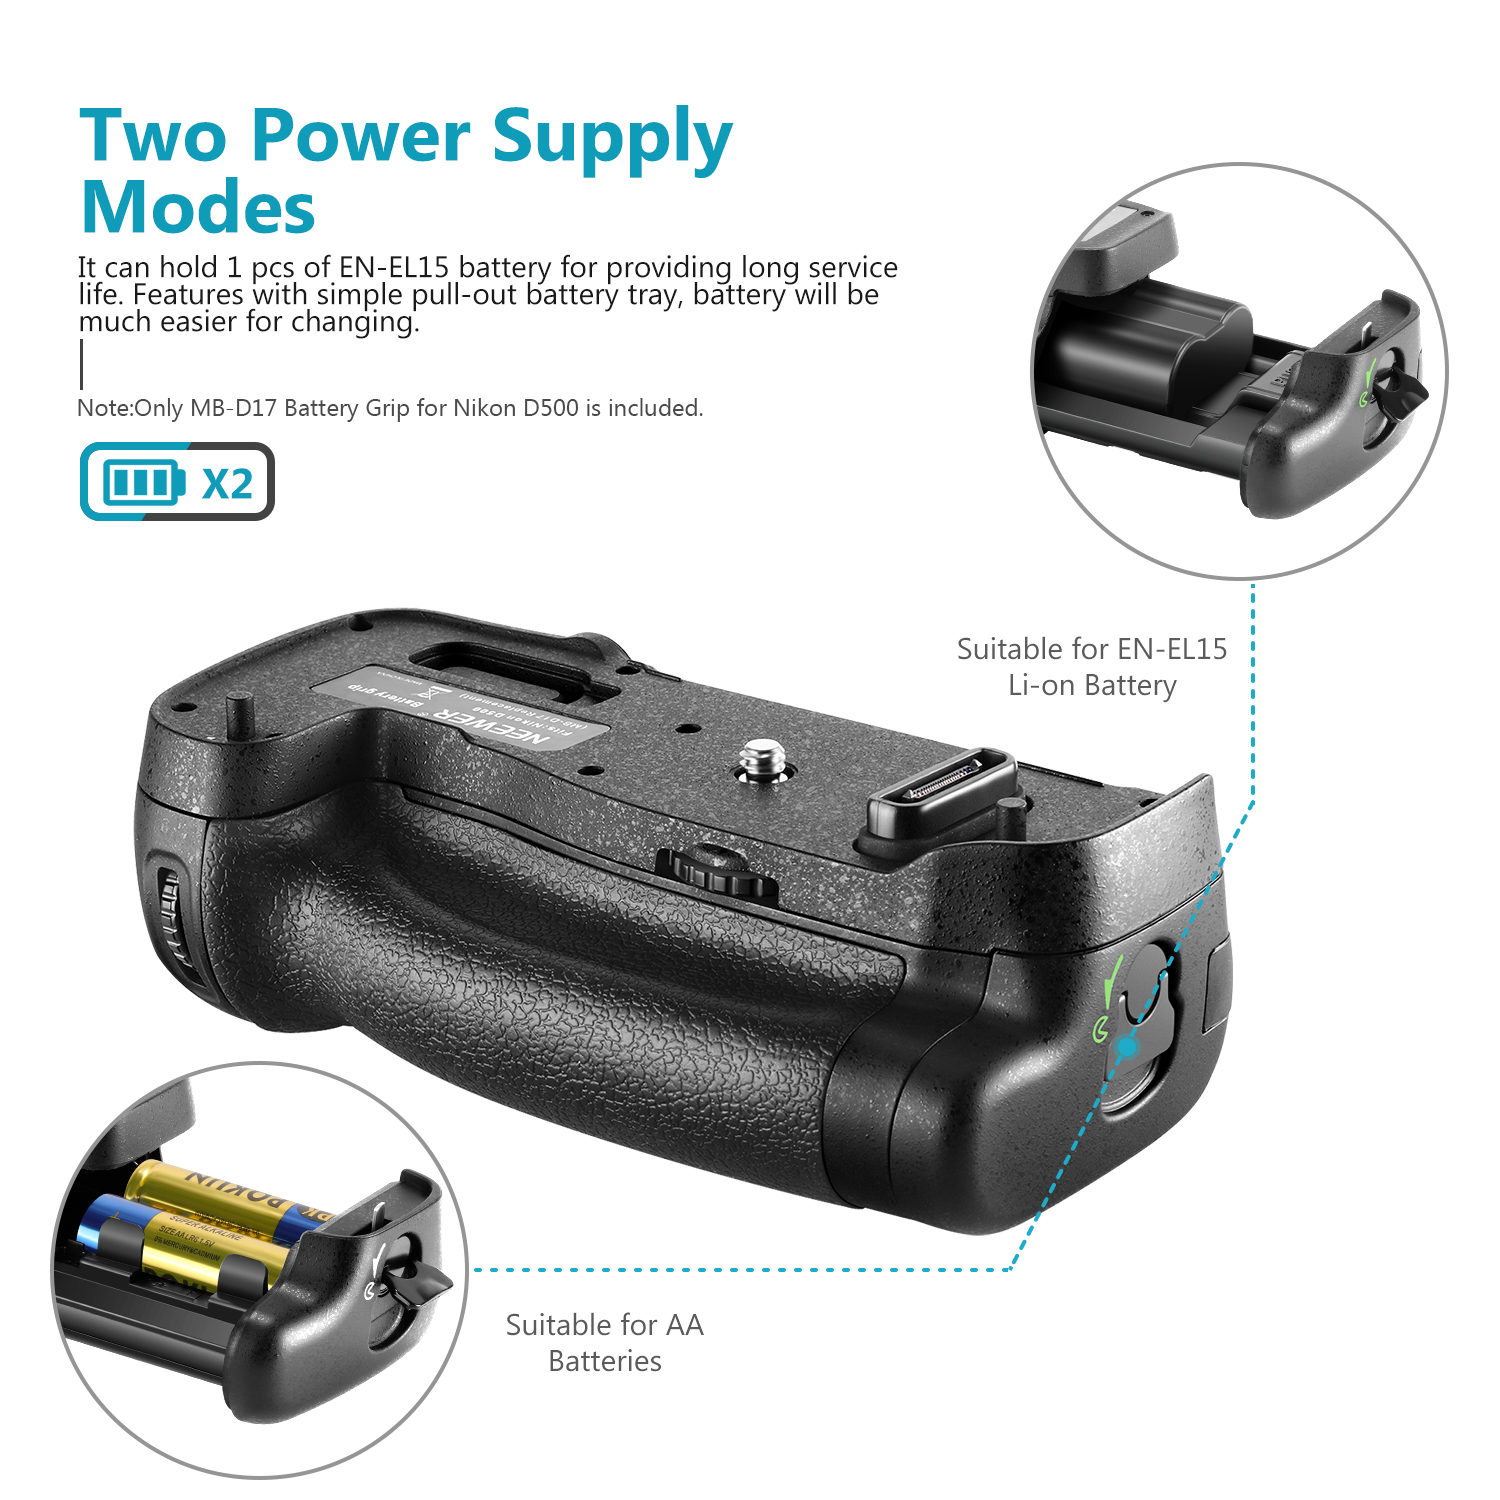 Neewer MB-D17 Replacement Battery Grip Work with 1 Piece EN-EL15 Battery or 8 Pieces AA Batteries for Nikon D500 Camera Black